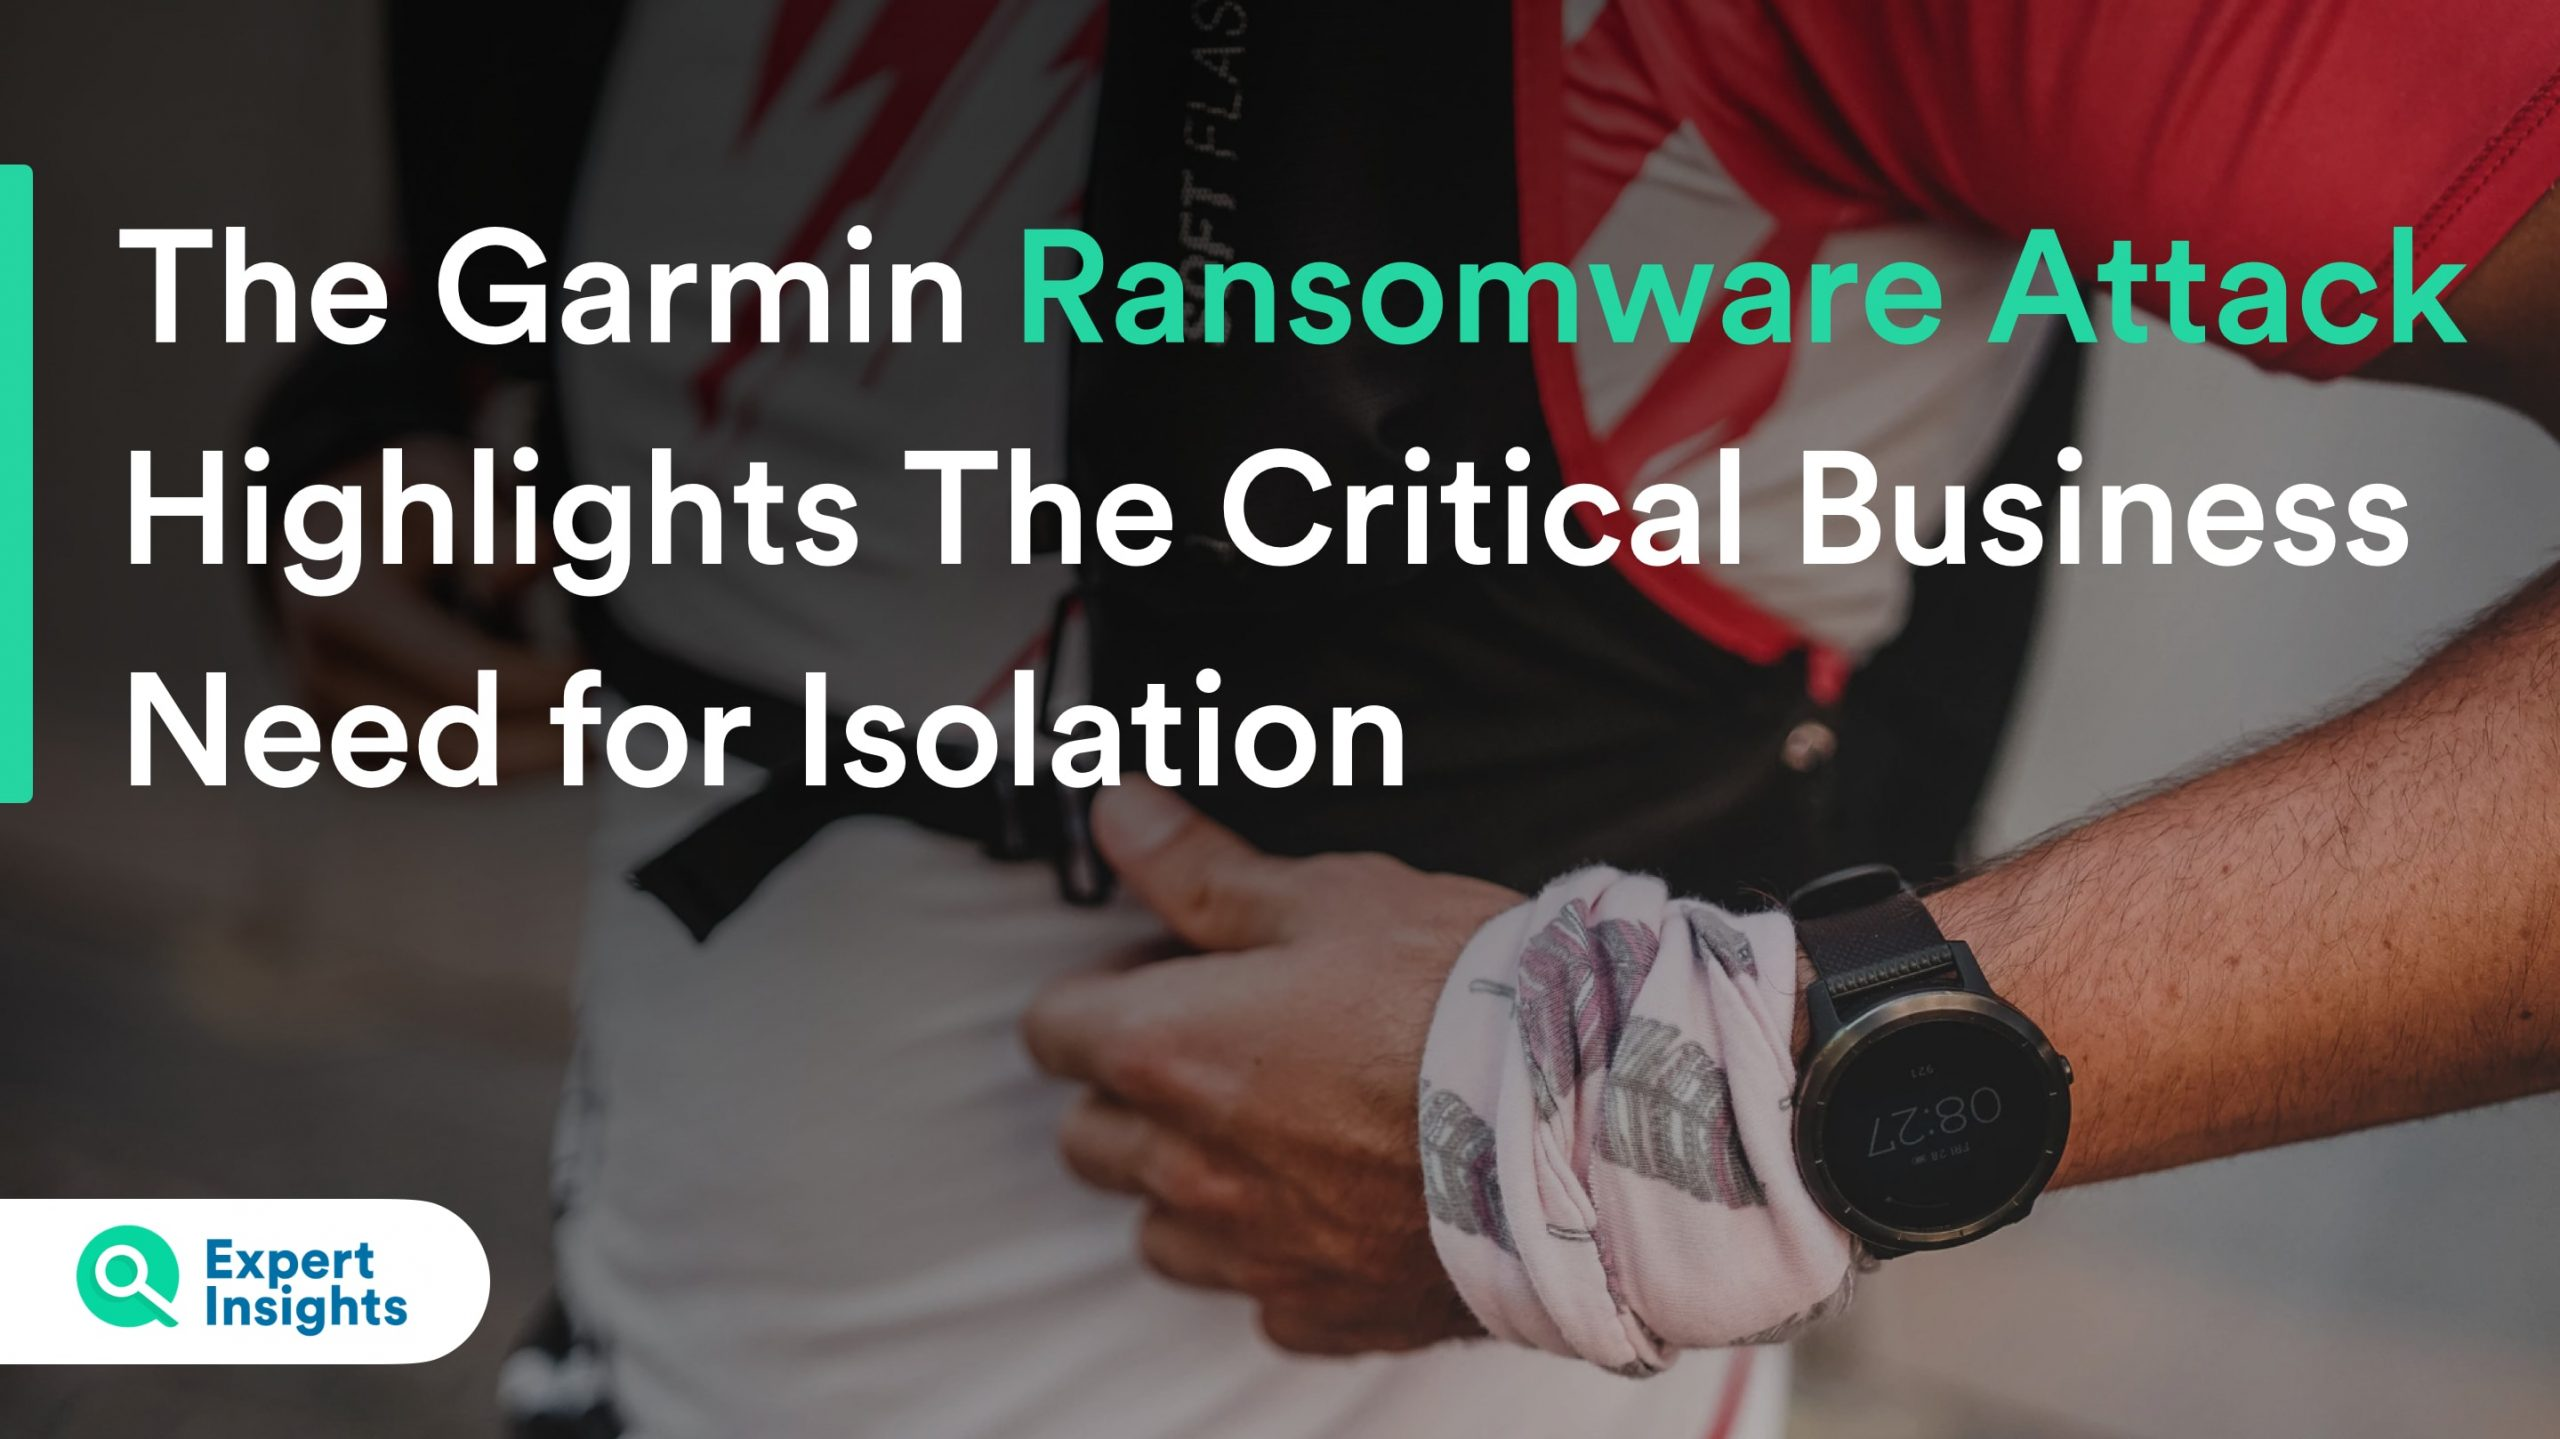 The Garmin Ransomware Attack Highlights the Critical Business Need for Internet Isolation